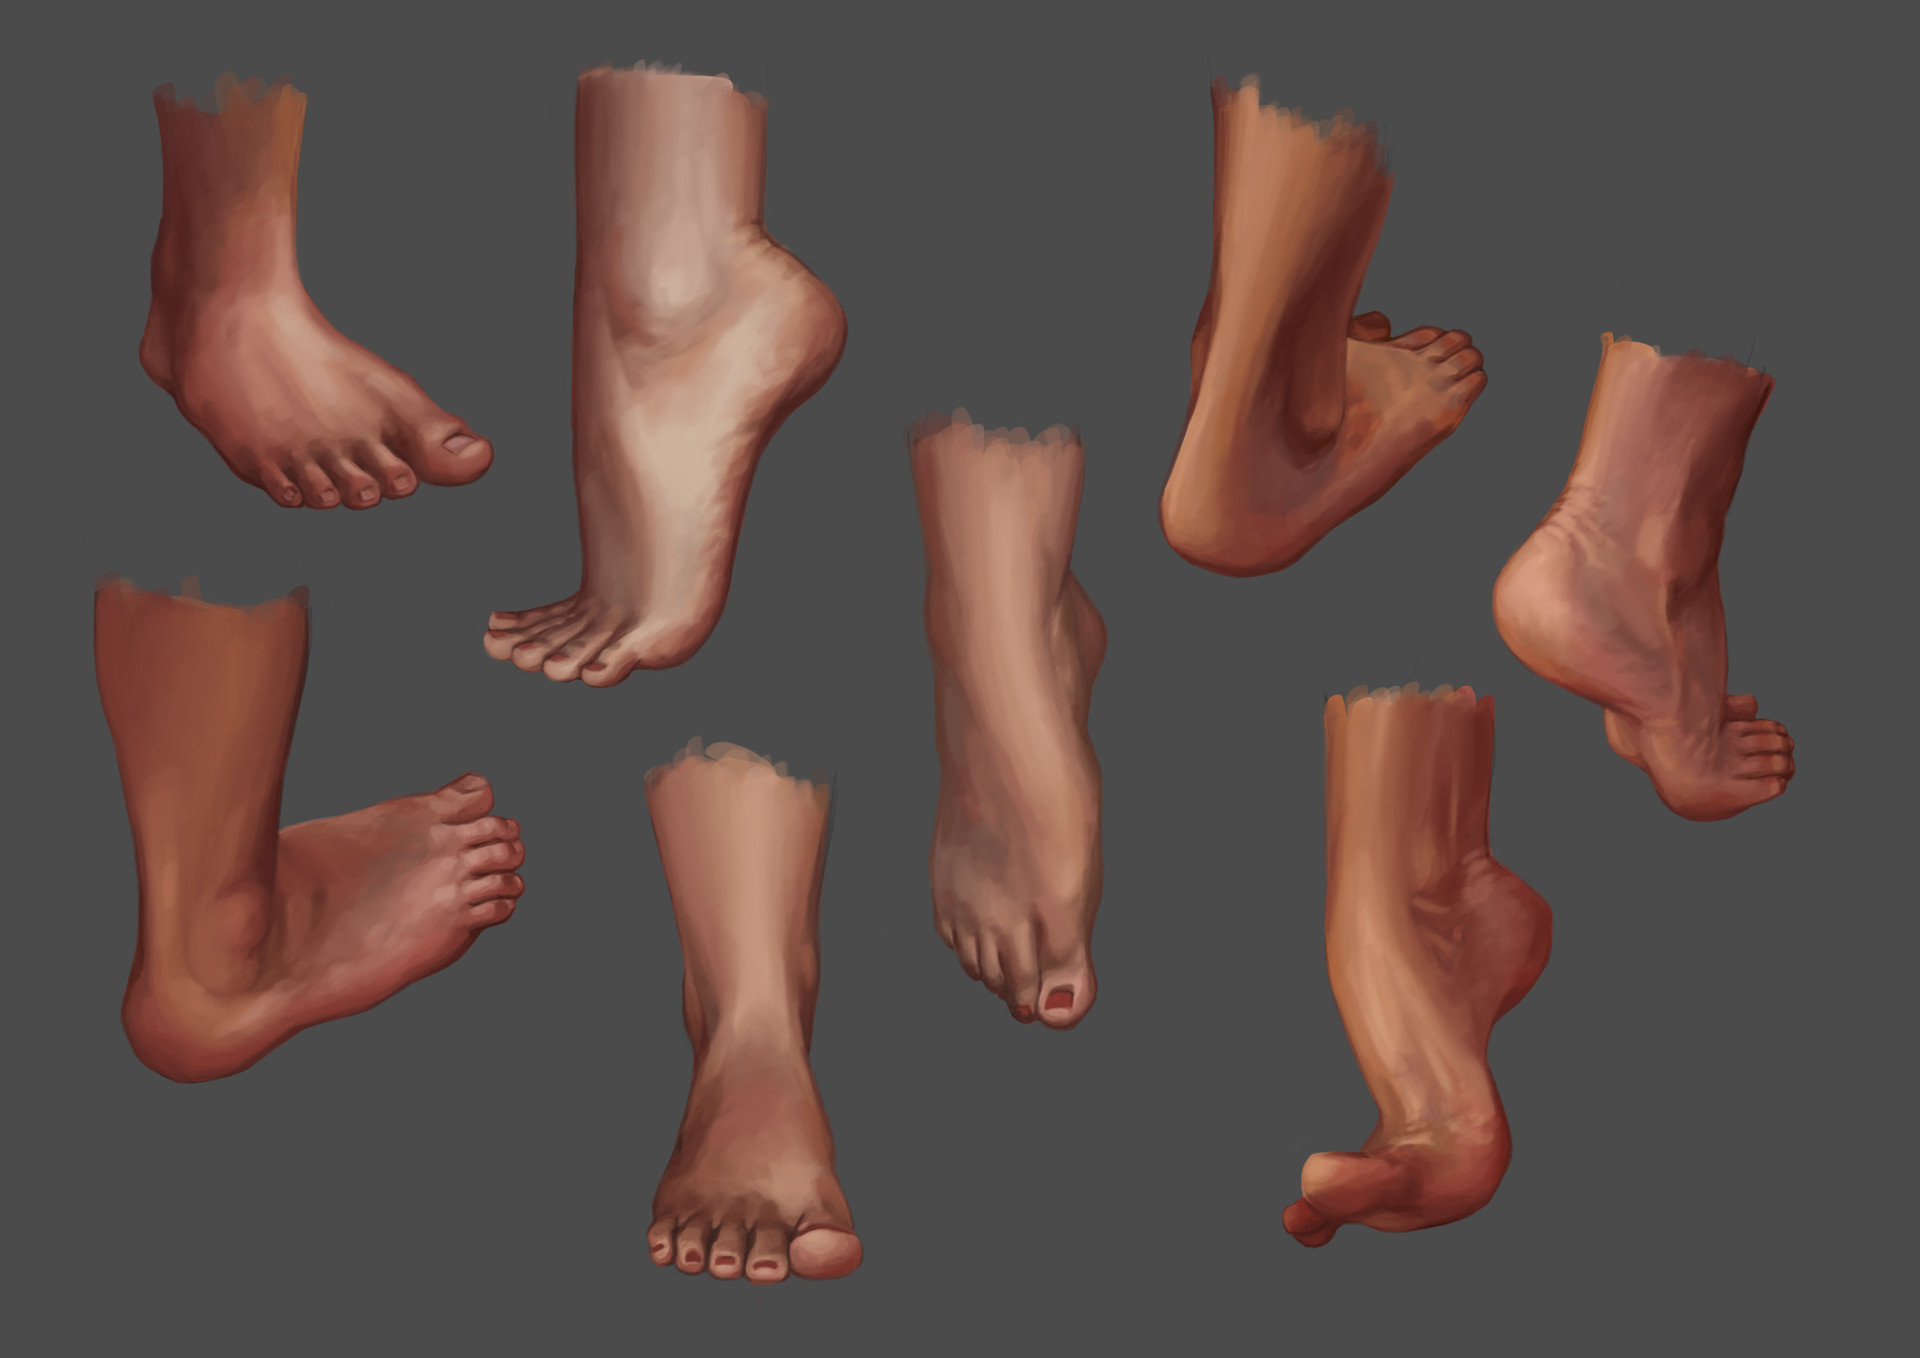 Feet studies with color reference from irysching.deviantart.com